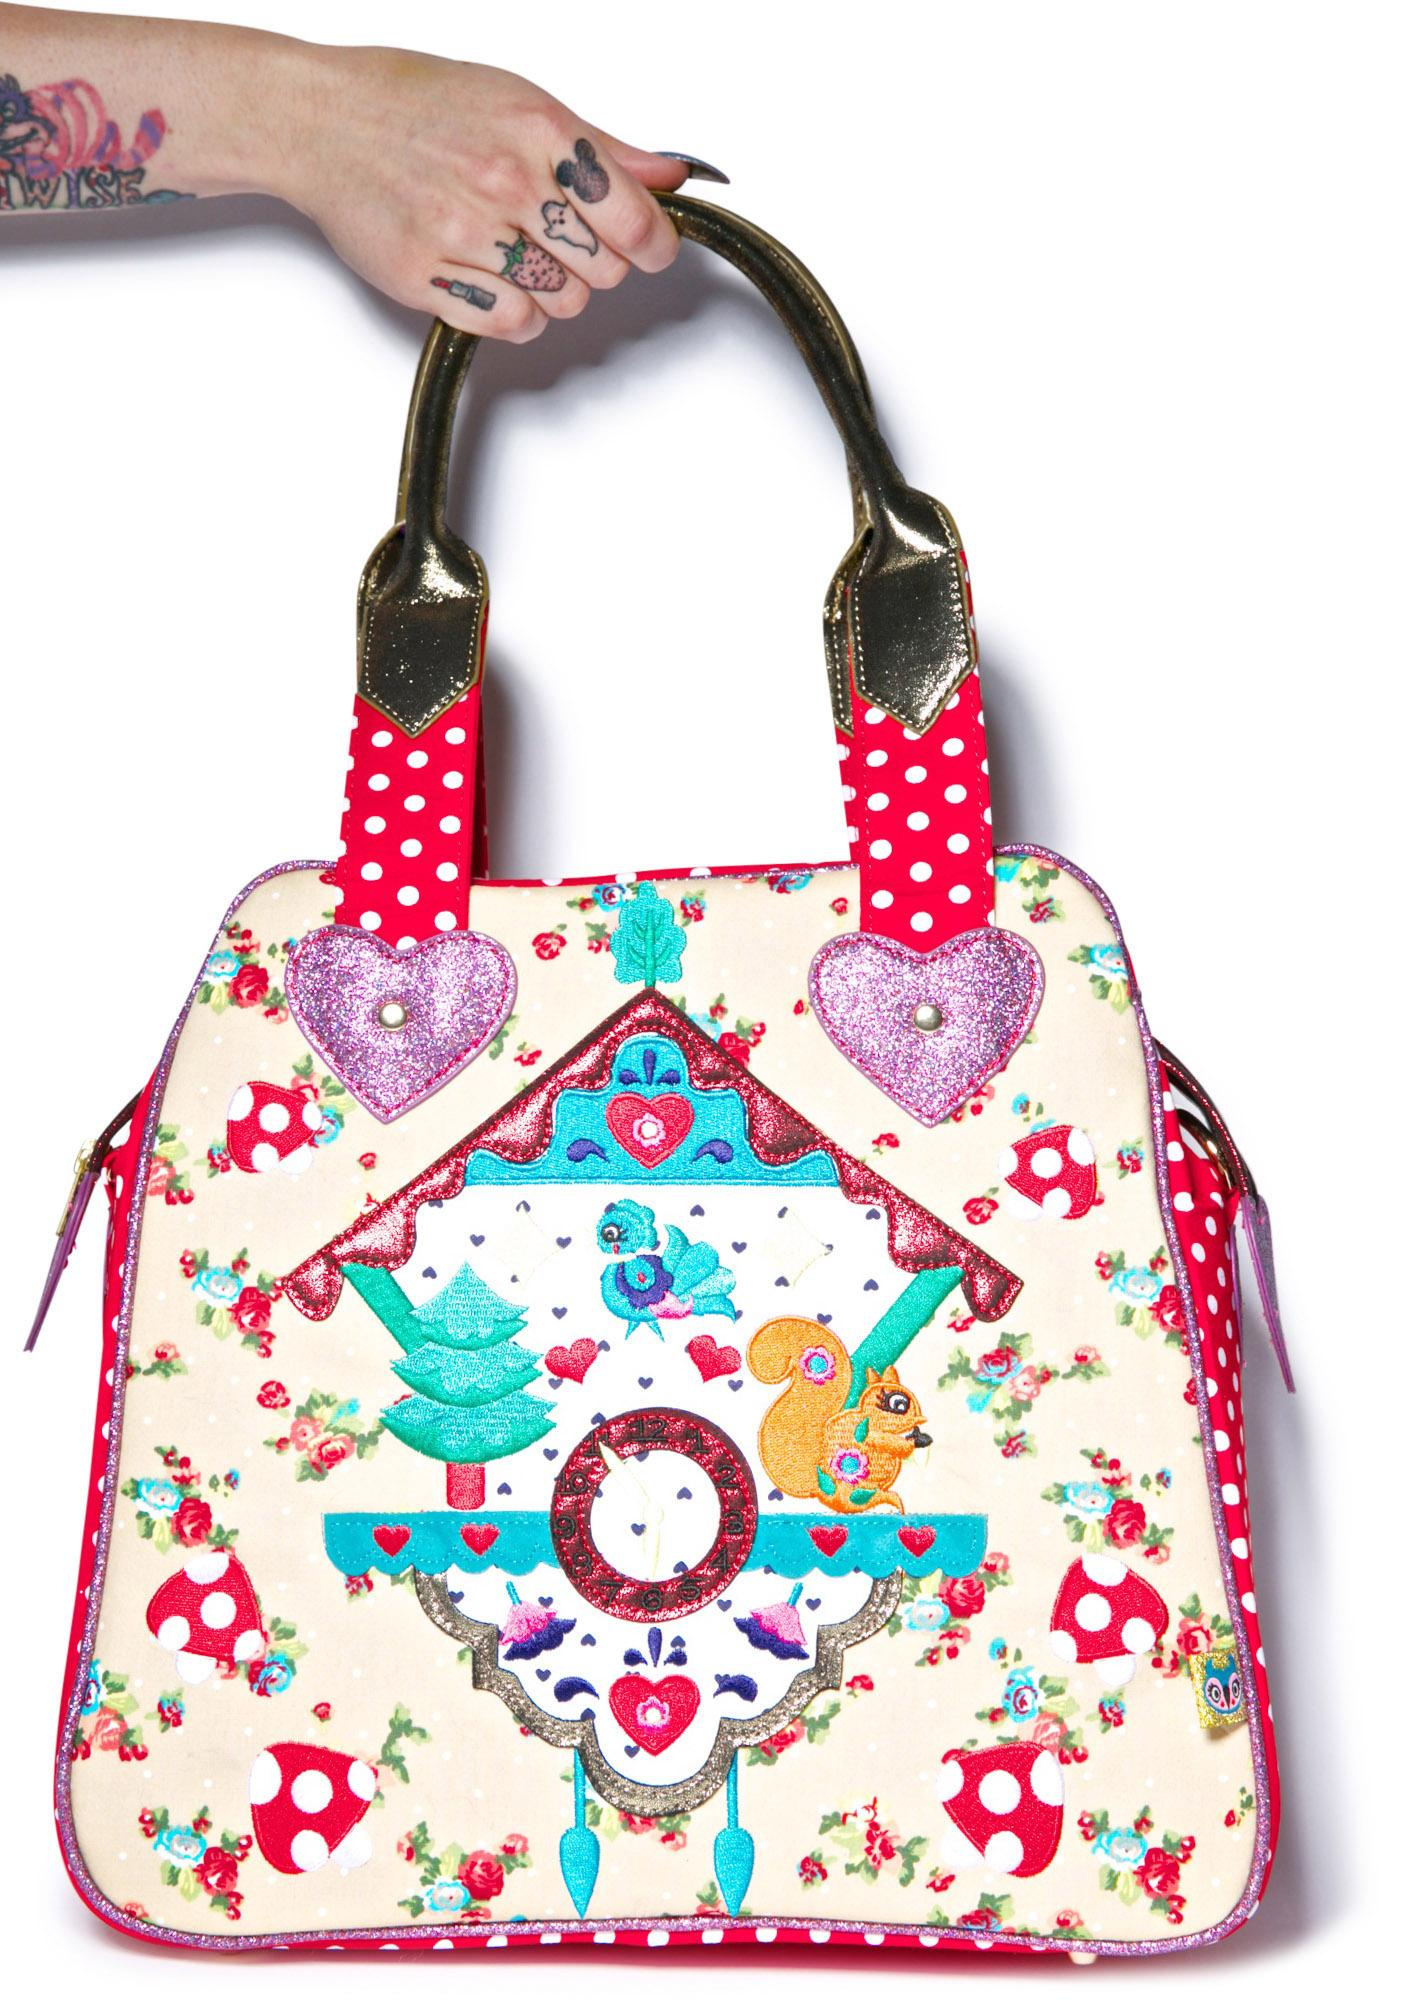 Irregular Choice Cuckoo Purse